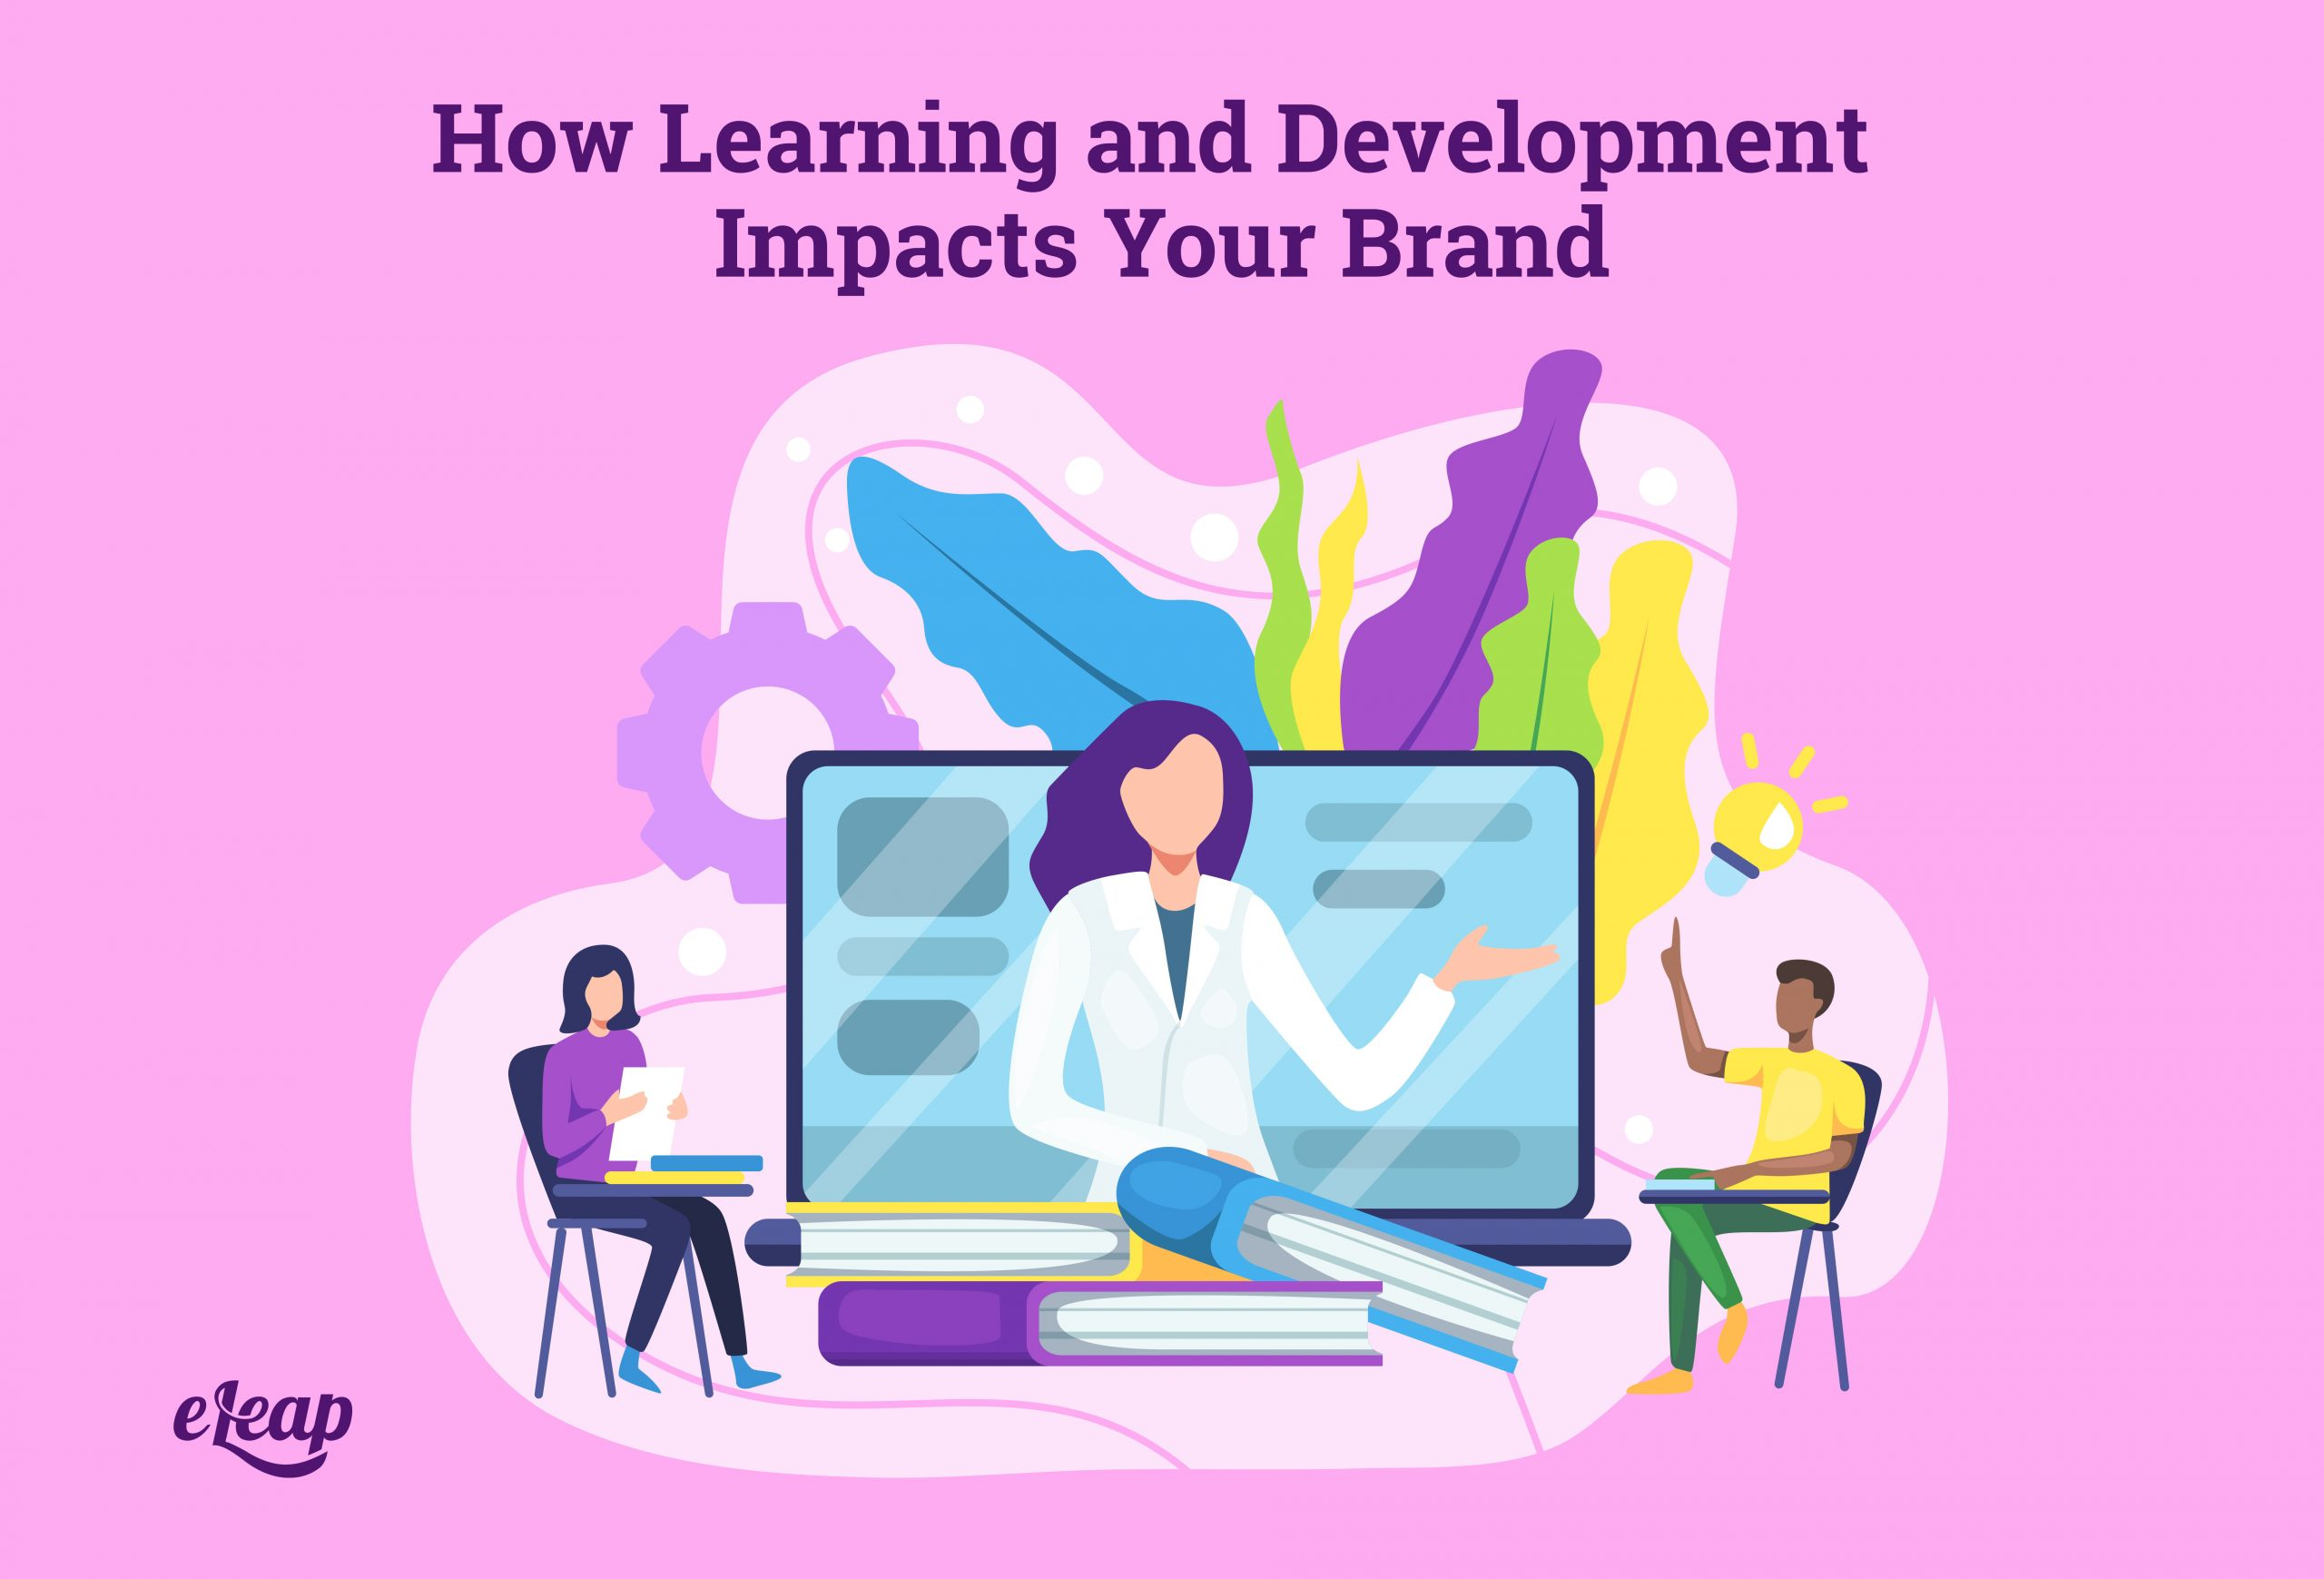 How Learning and Development Impacts Your Brand